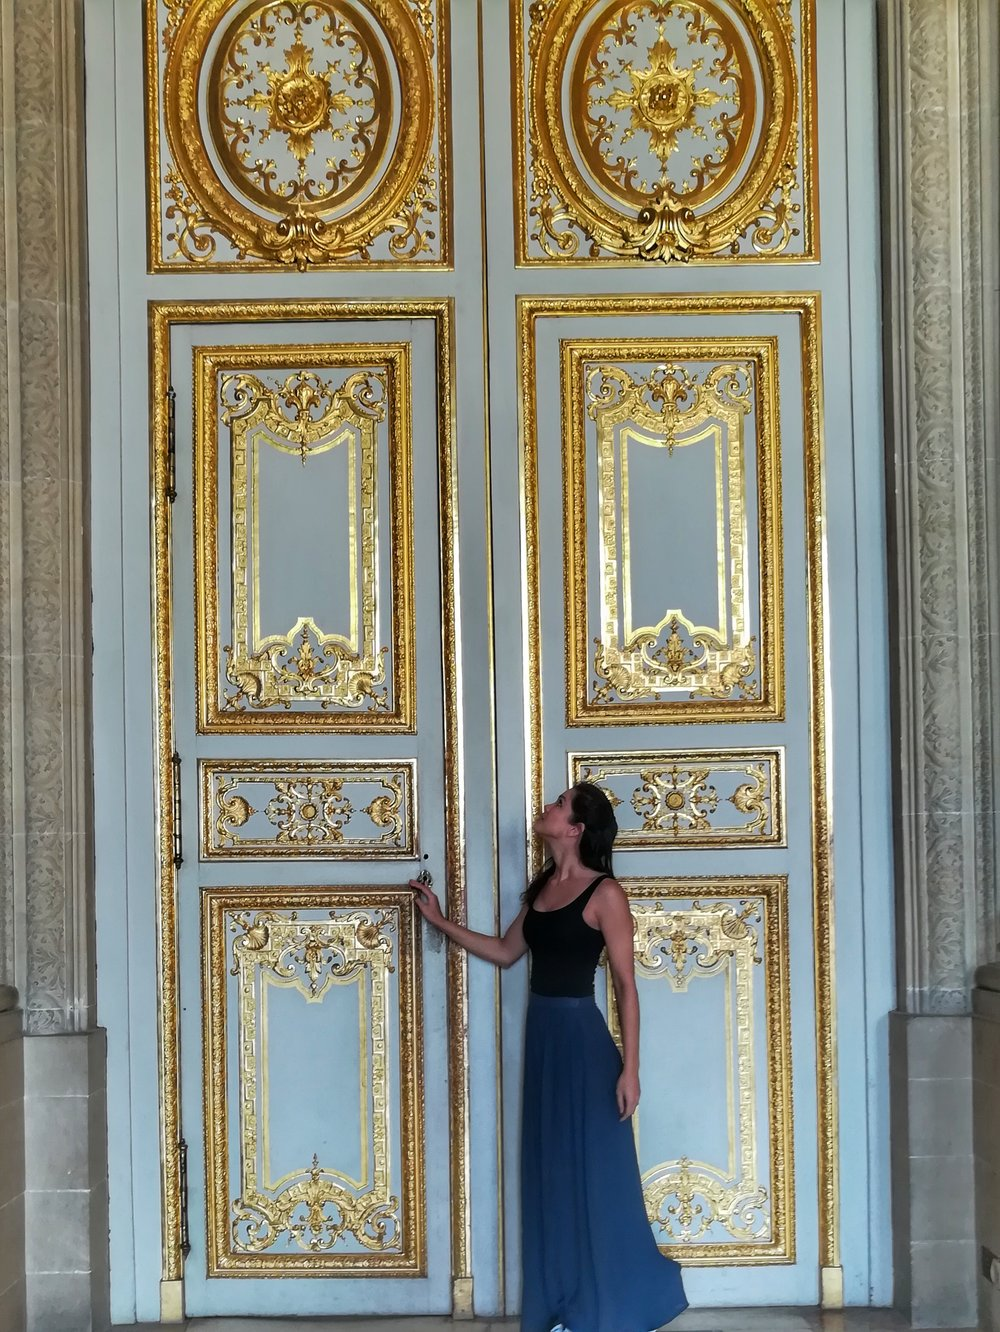 The beautiful doors in the Palace